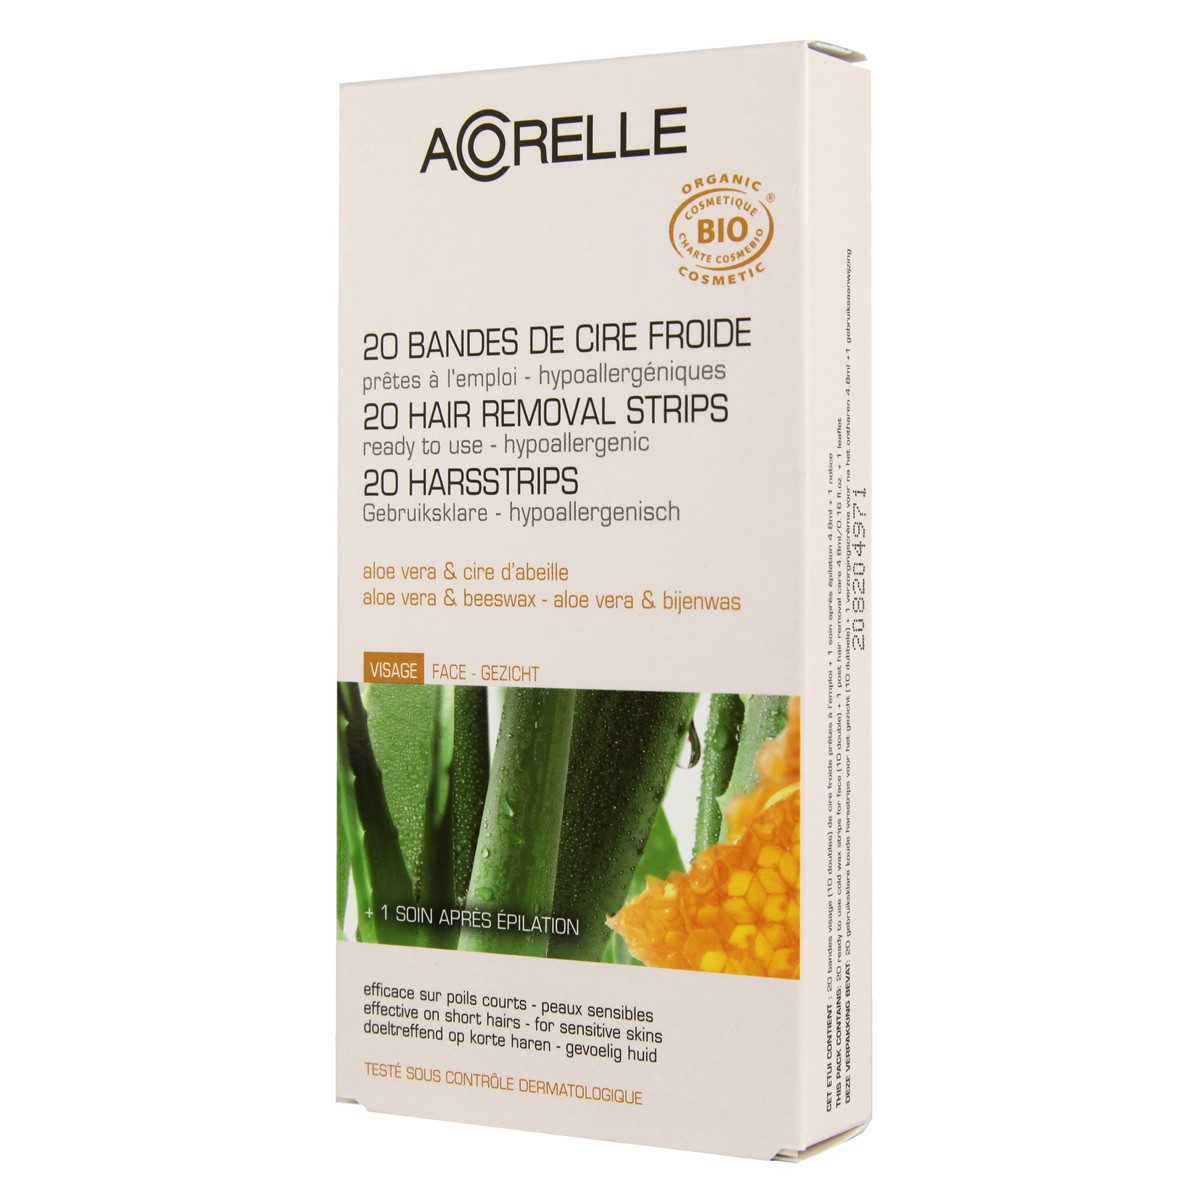 Acorelle Skin Care Facial Hair Ready to Use Strips - Aloe Vera & Beeswax